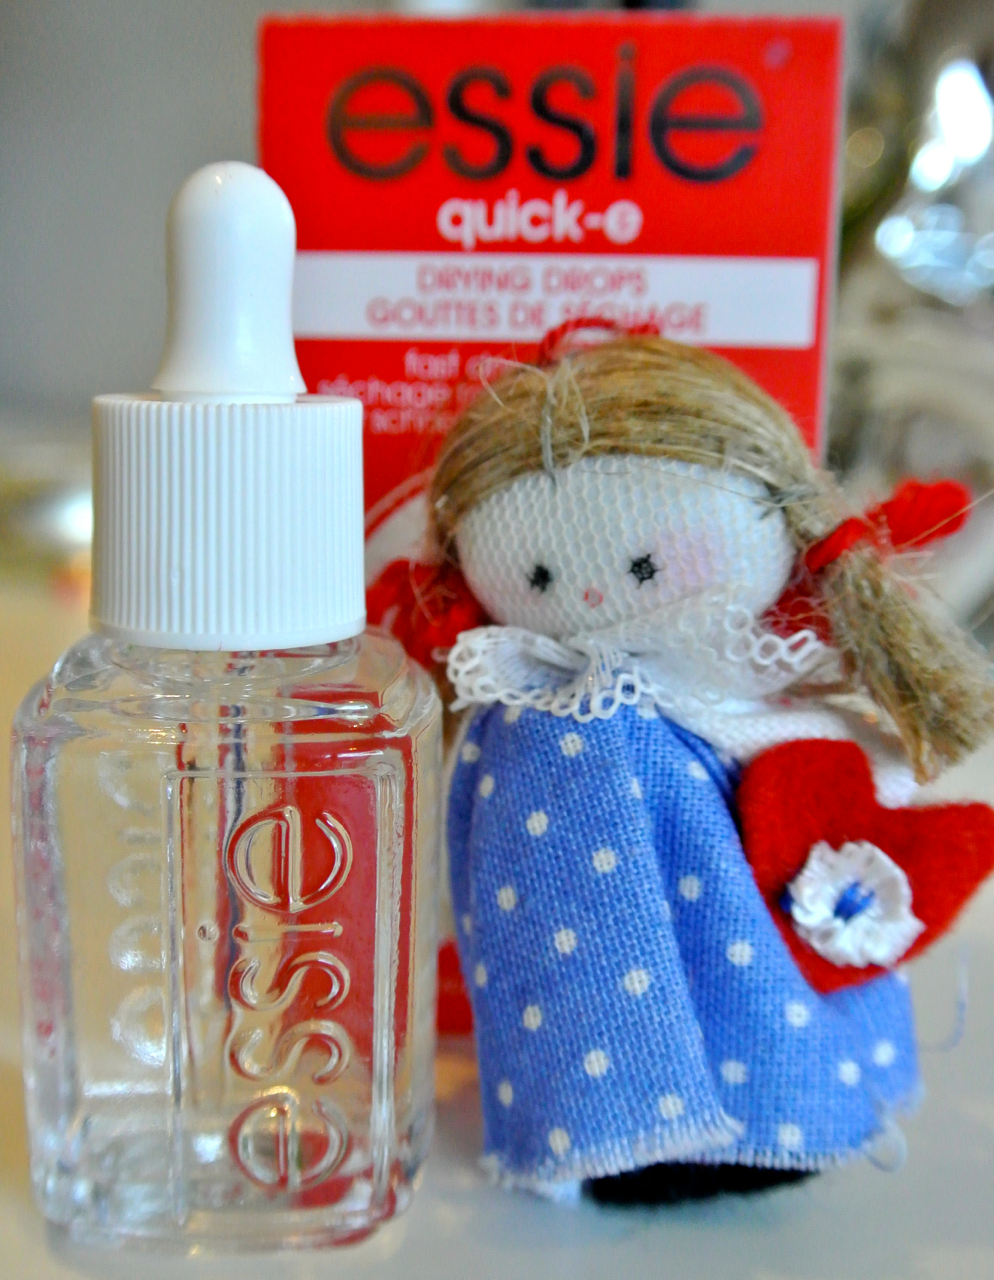 Review: Essie Quick-e Fast Dry Nail Drops | So Many Lovely Things